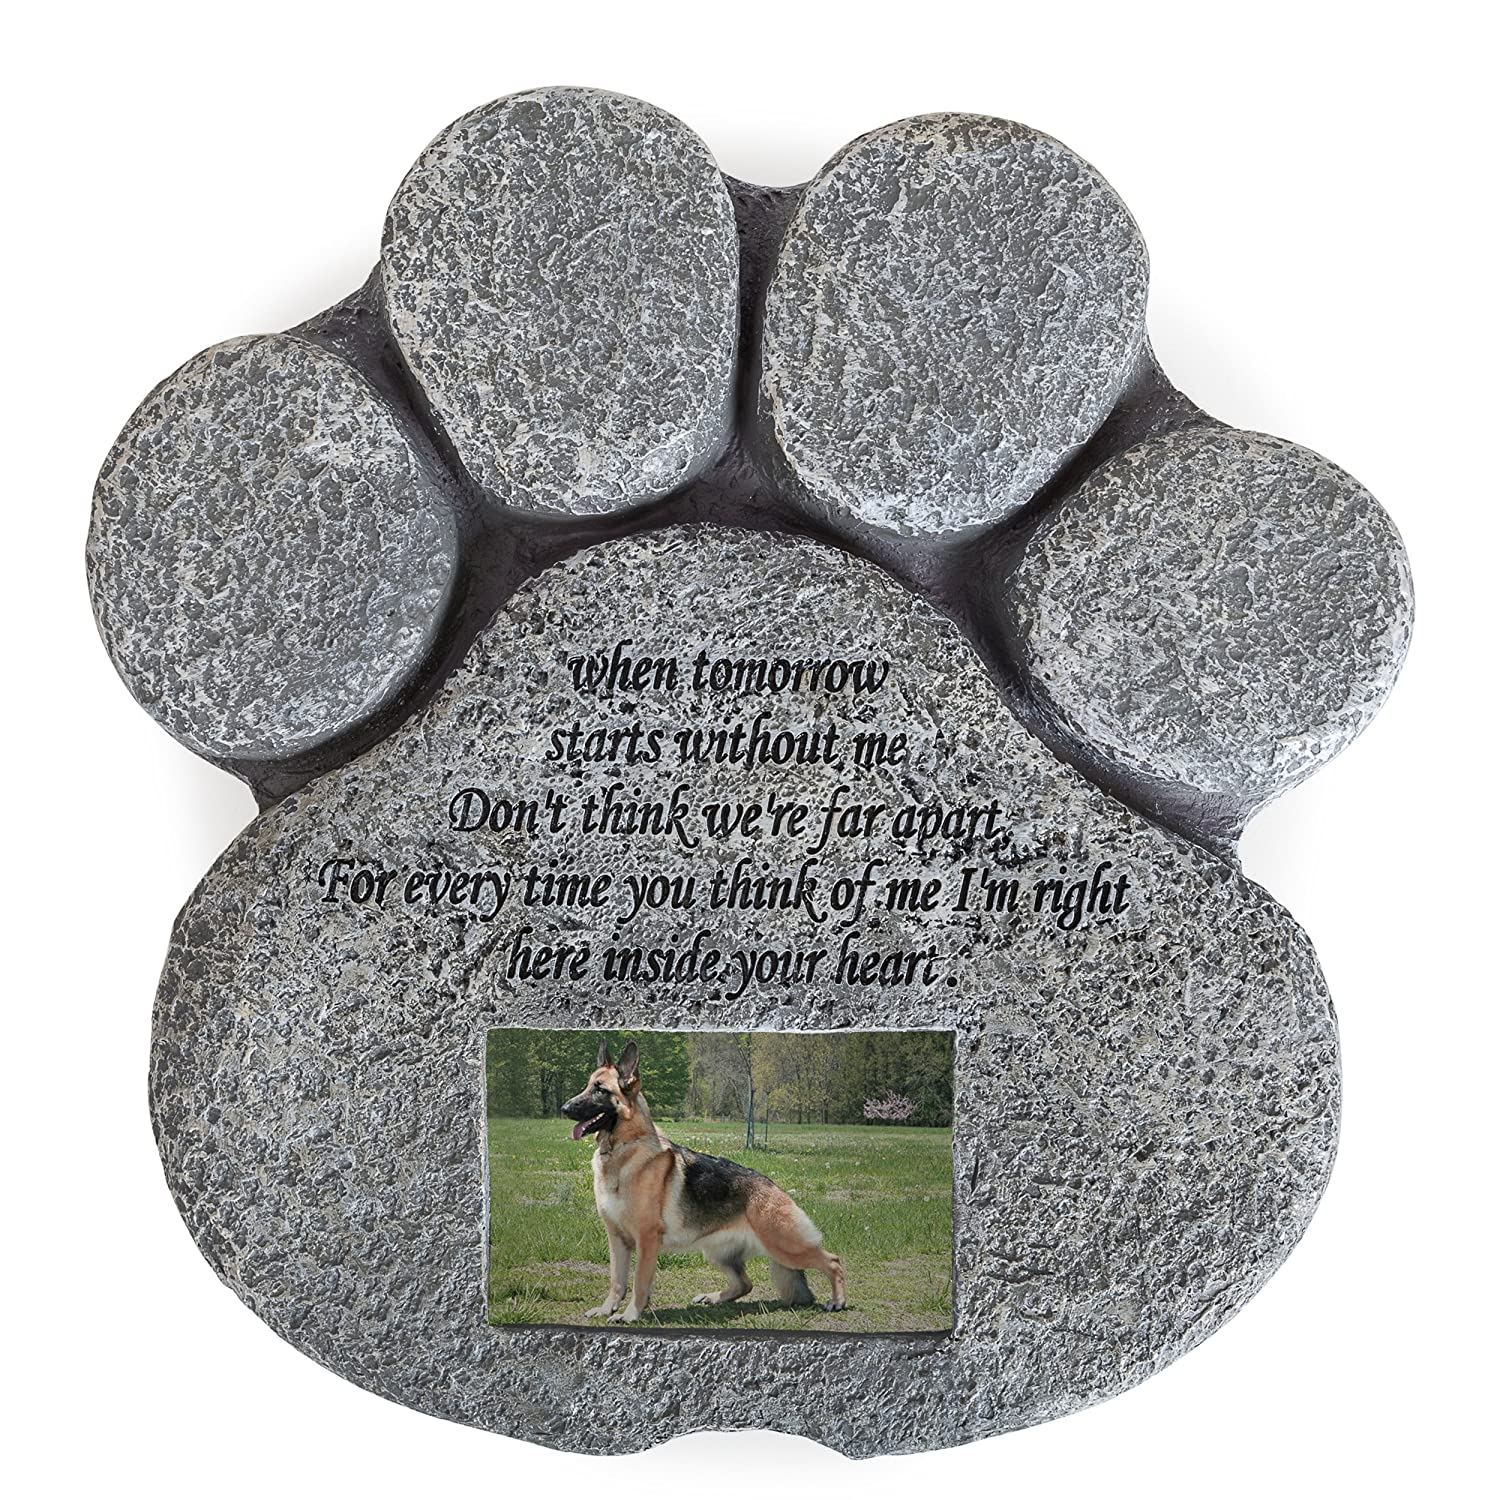 Besti Pet Memorial Stone for Cats and Dogs – Paw Shaped Headstone with Loss Comforting Poem, Photo Frame Grave Marker for Outdoor Tombstone Or Indoor Display